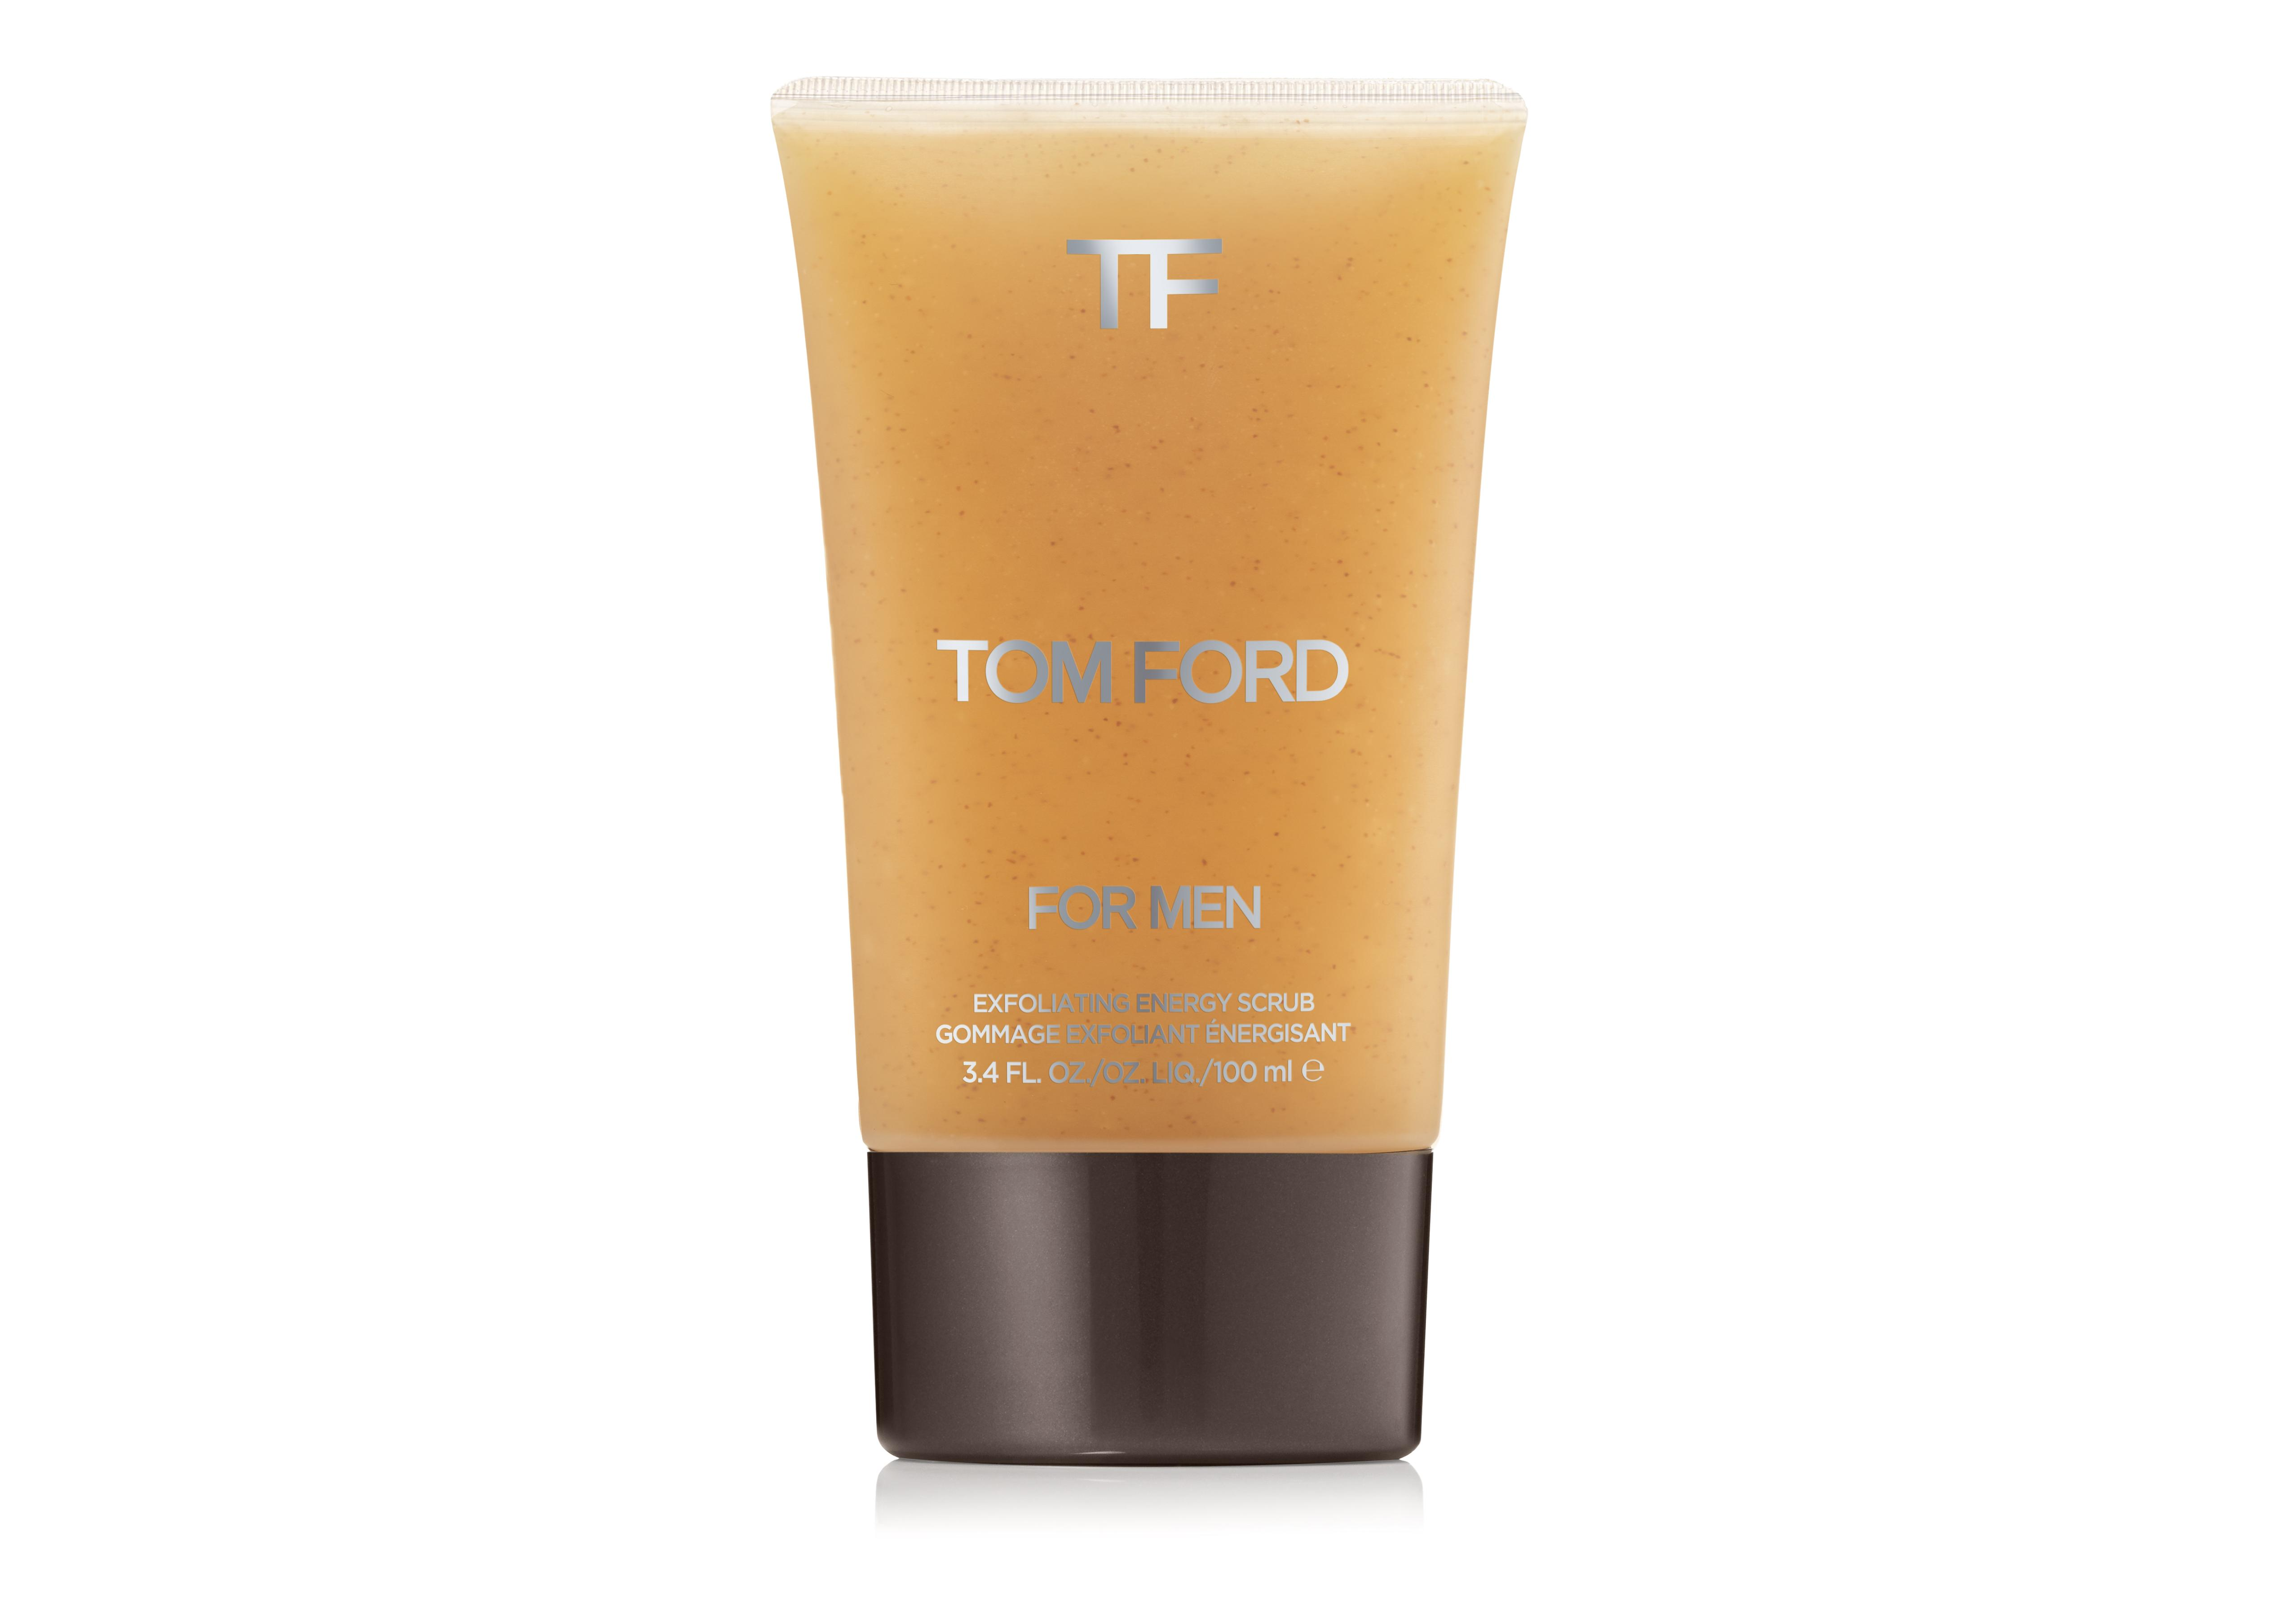 Tom Ford - For Men Exfoliating Energy Scrub -100ml/3.4oz Quick Clean Makeup Remover Pads Jason Natural Cosmetics 75 Pad